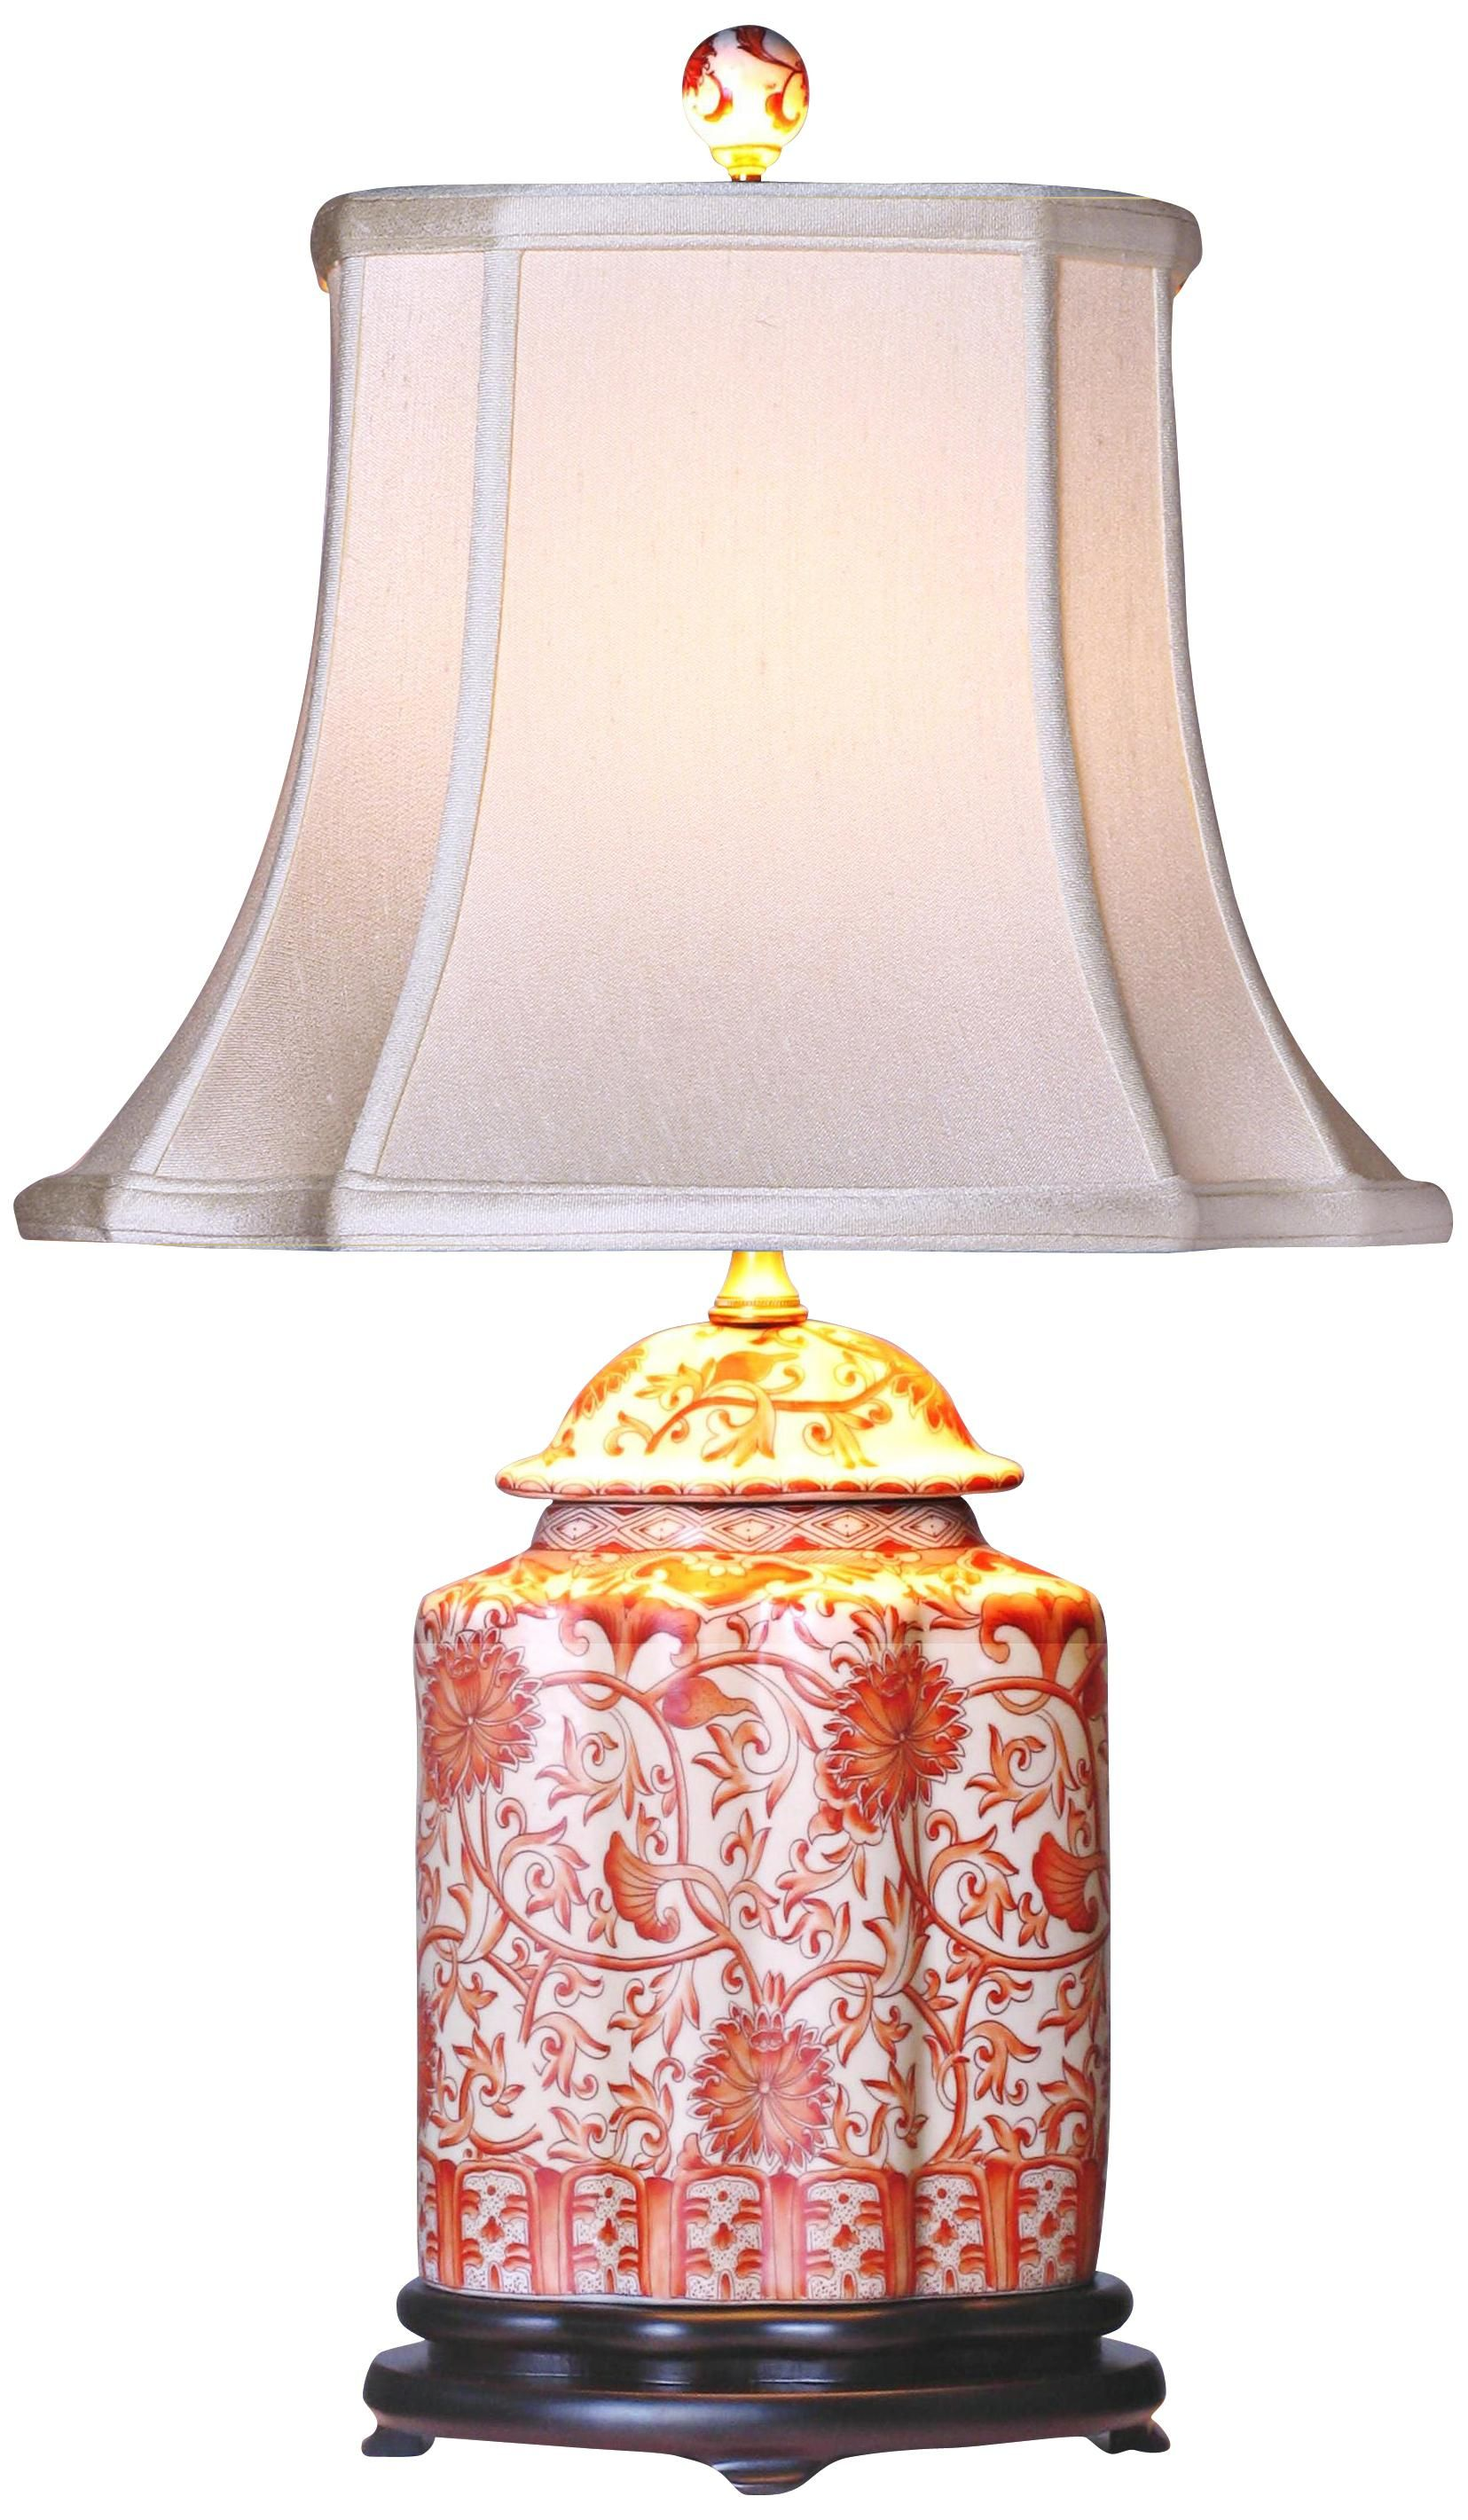 Coral Porcelain Scalloped Tea Jar Table Lamp   Family Room